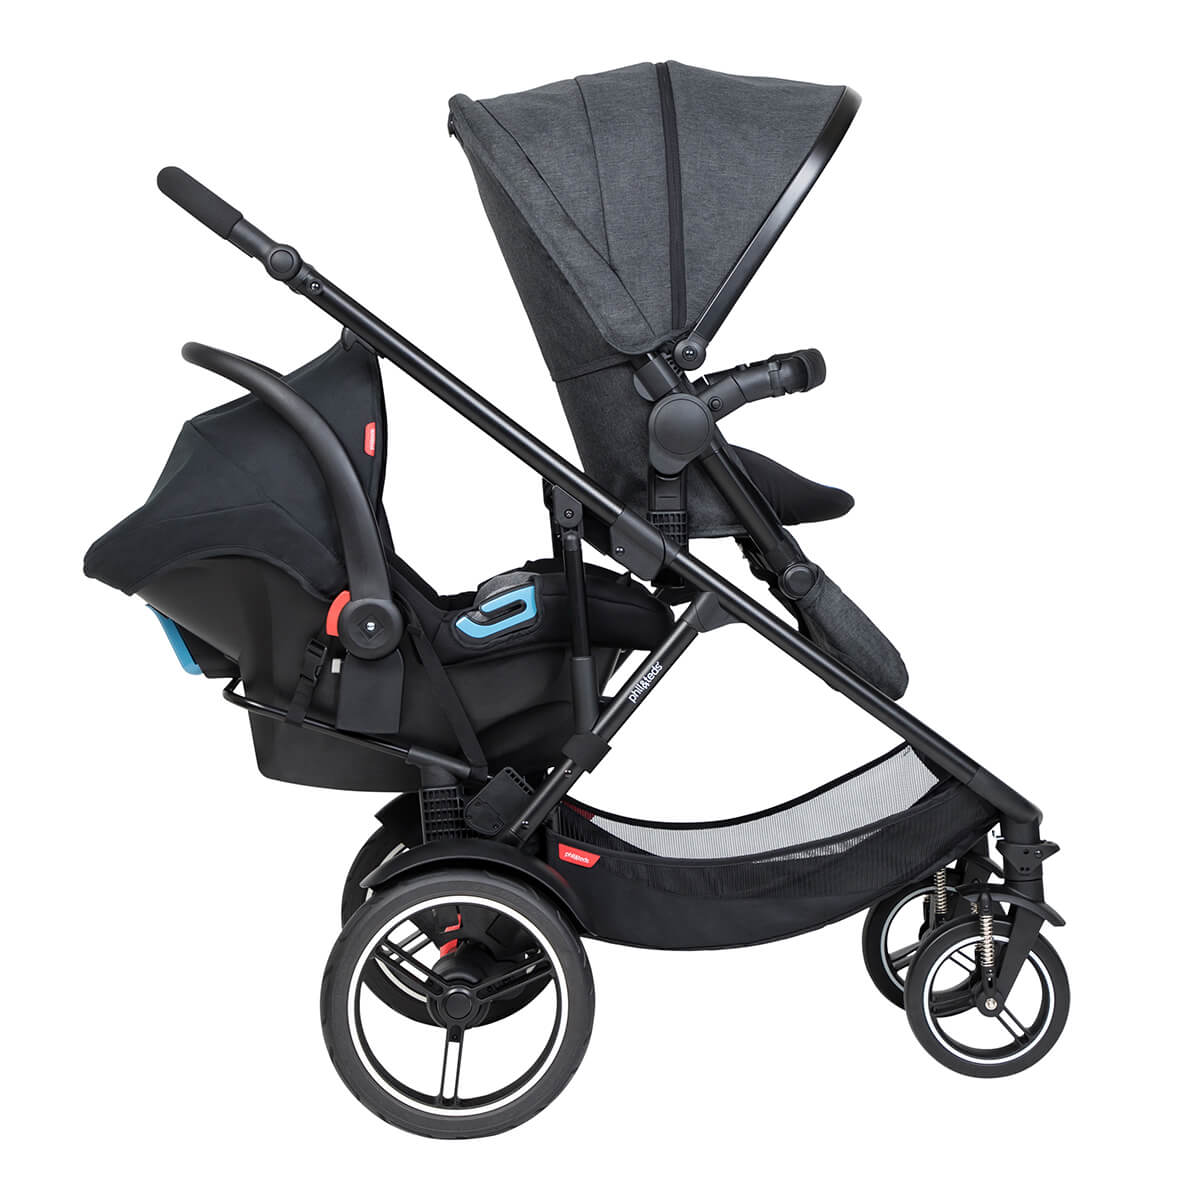 https://cdn.accentuate.io/4509912891469/19466204250306/philteds-voyager-buggy-in-forward-facing-mode-with-travel-system-in-the-rear-v1626485555720.jpg?1200x1200